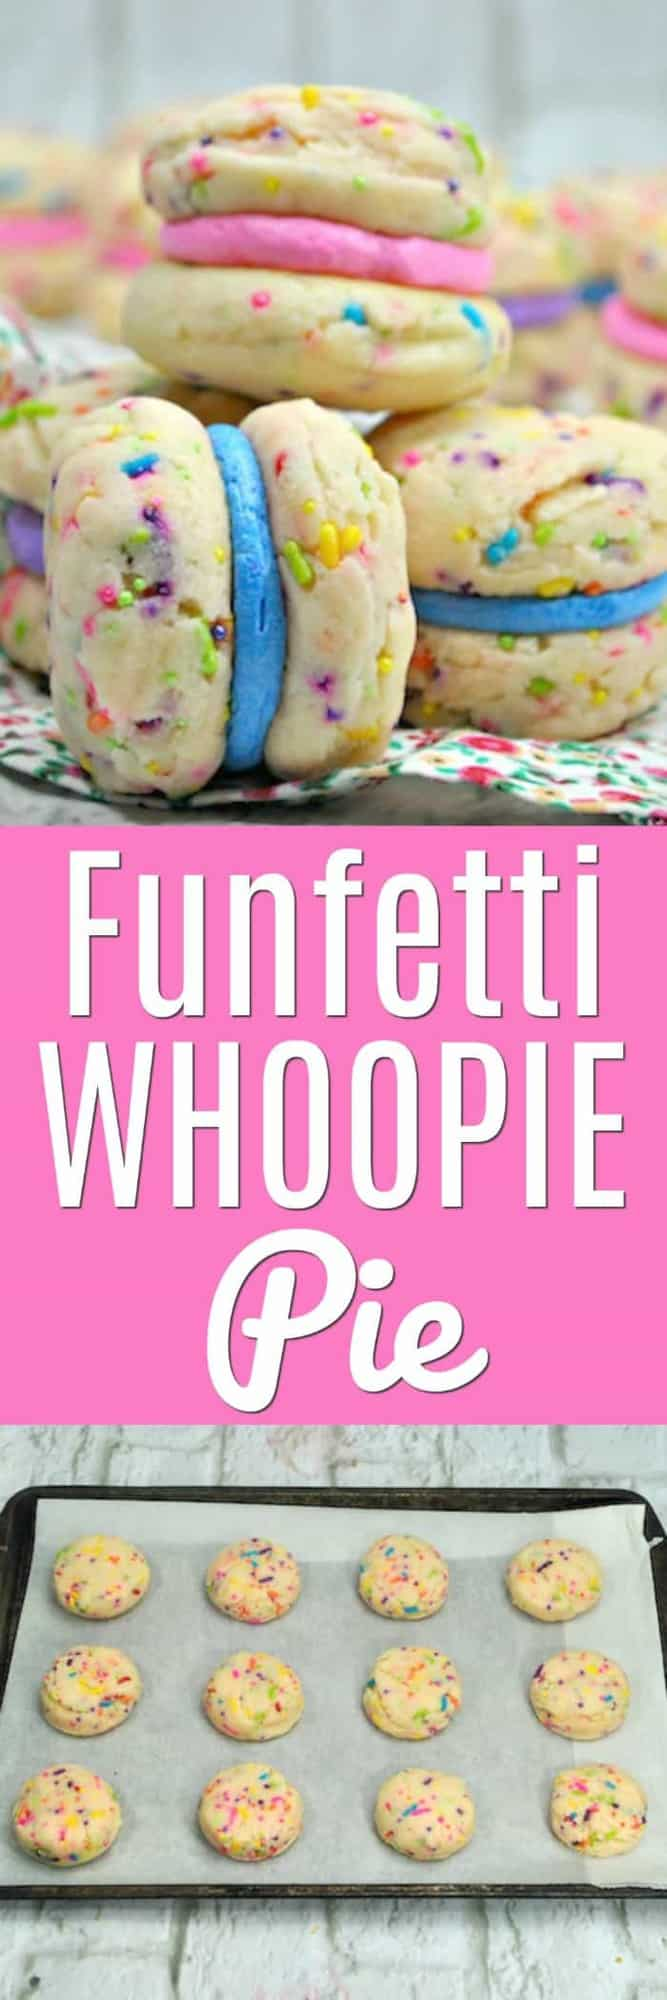 These Funfetti Whoopie Pies bring a whole rainbow of colors and sprinkles to the traditional whoopie pie recipe! Some may call them Unicorn Whoopie Pies or Rainbow Whoopie Pies, but I just call them delicious! Cake-like sandwich cookies filled with cream - Count me in!